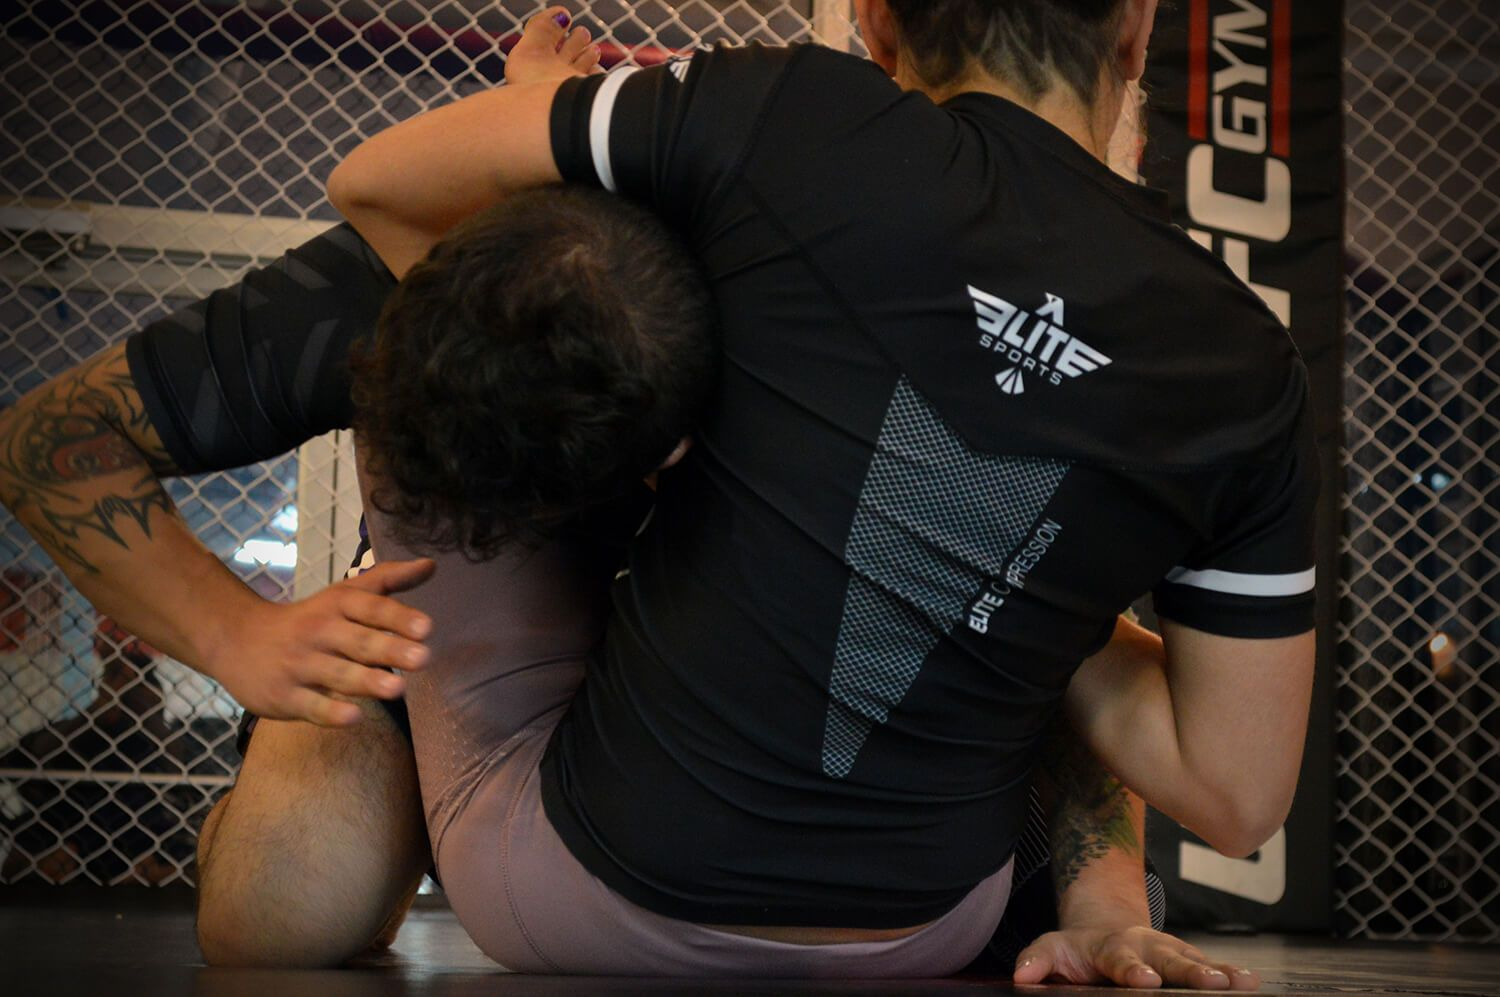 Elite-sports-Team-Elite-NO GI-Andria-Torrez-image15.jpeg